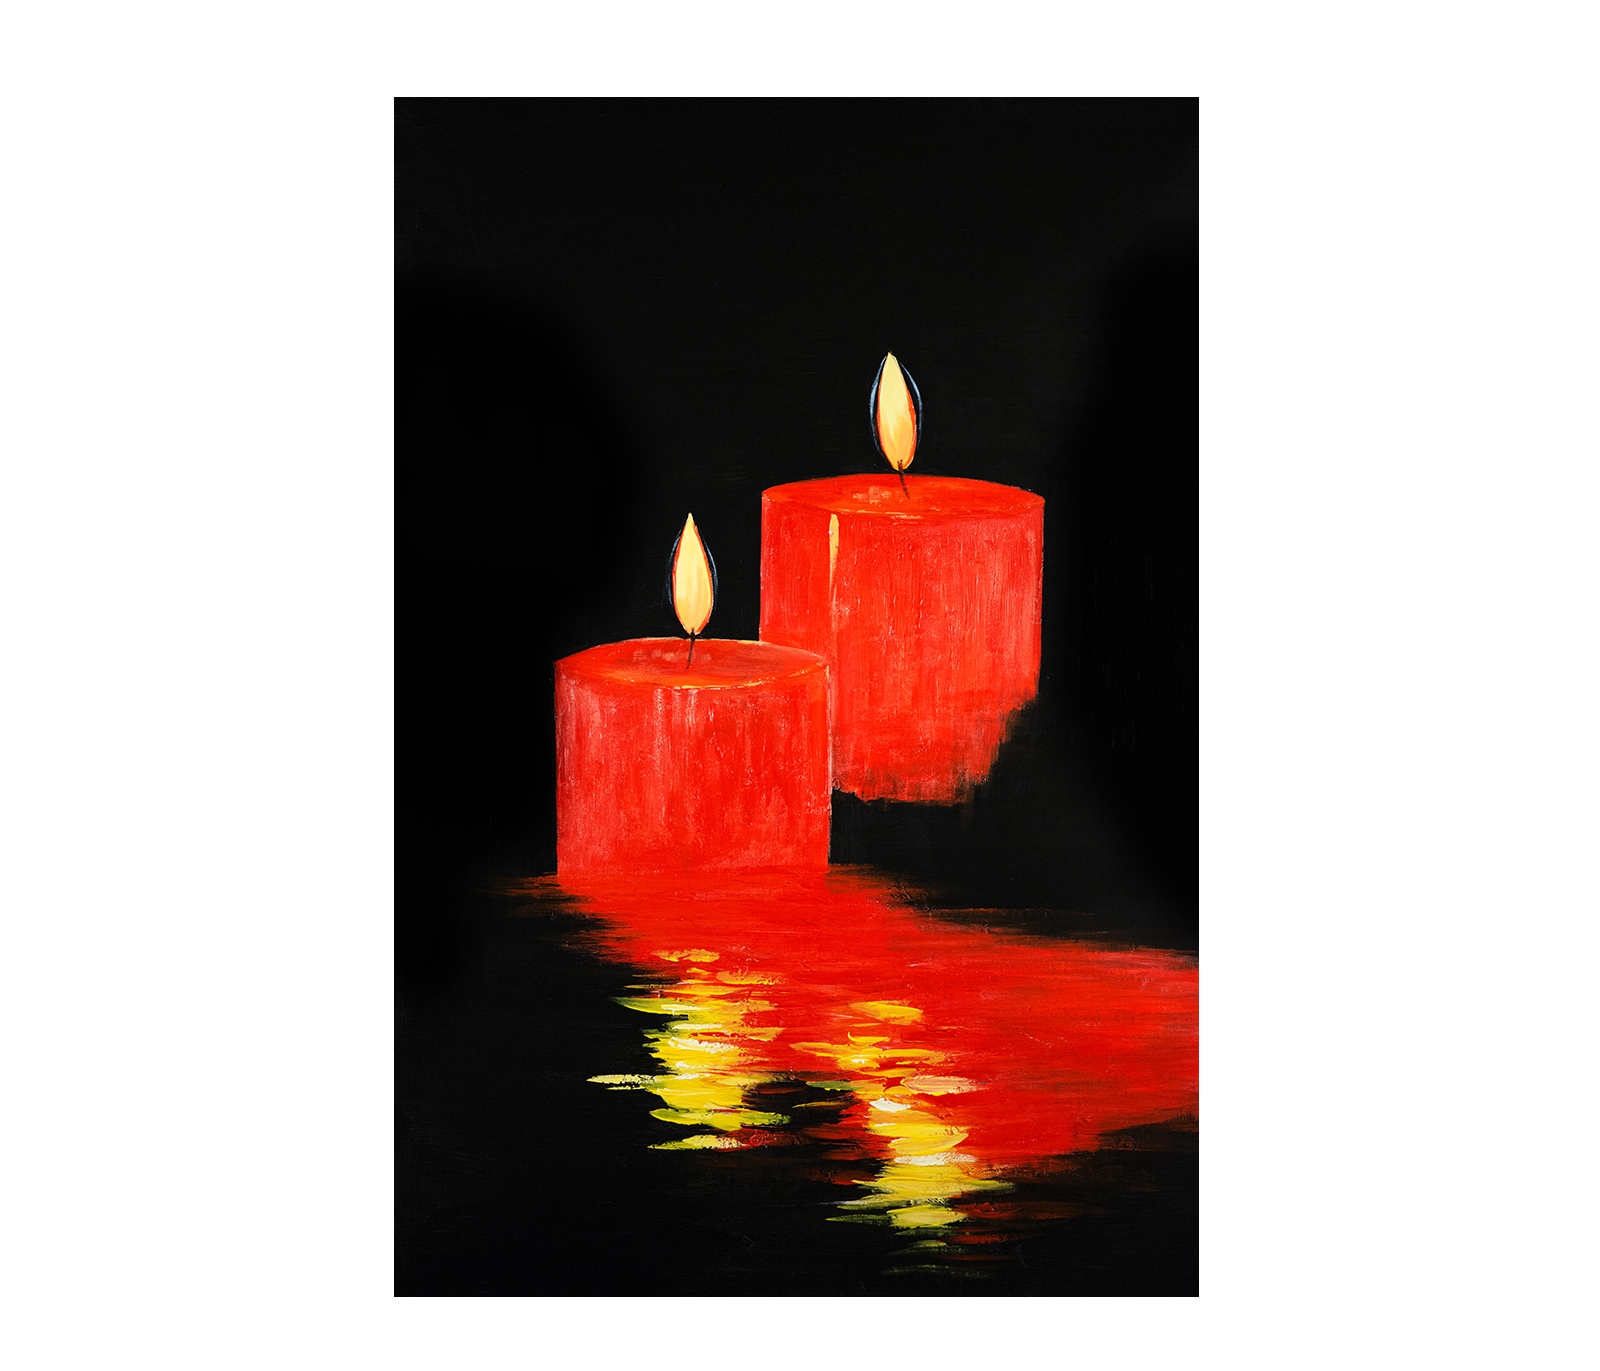 abstract romantic candles feng shui bedroom painting ebay. Black Bedroom Furniture Sets. Home Design Ideas